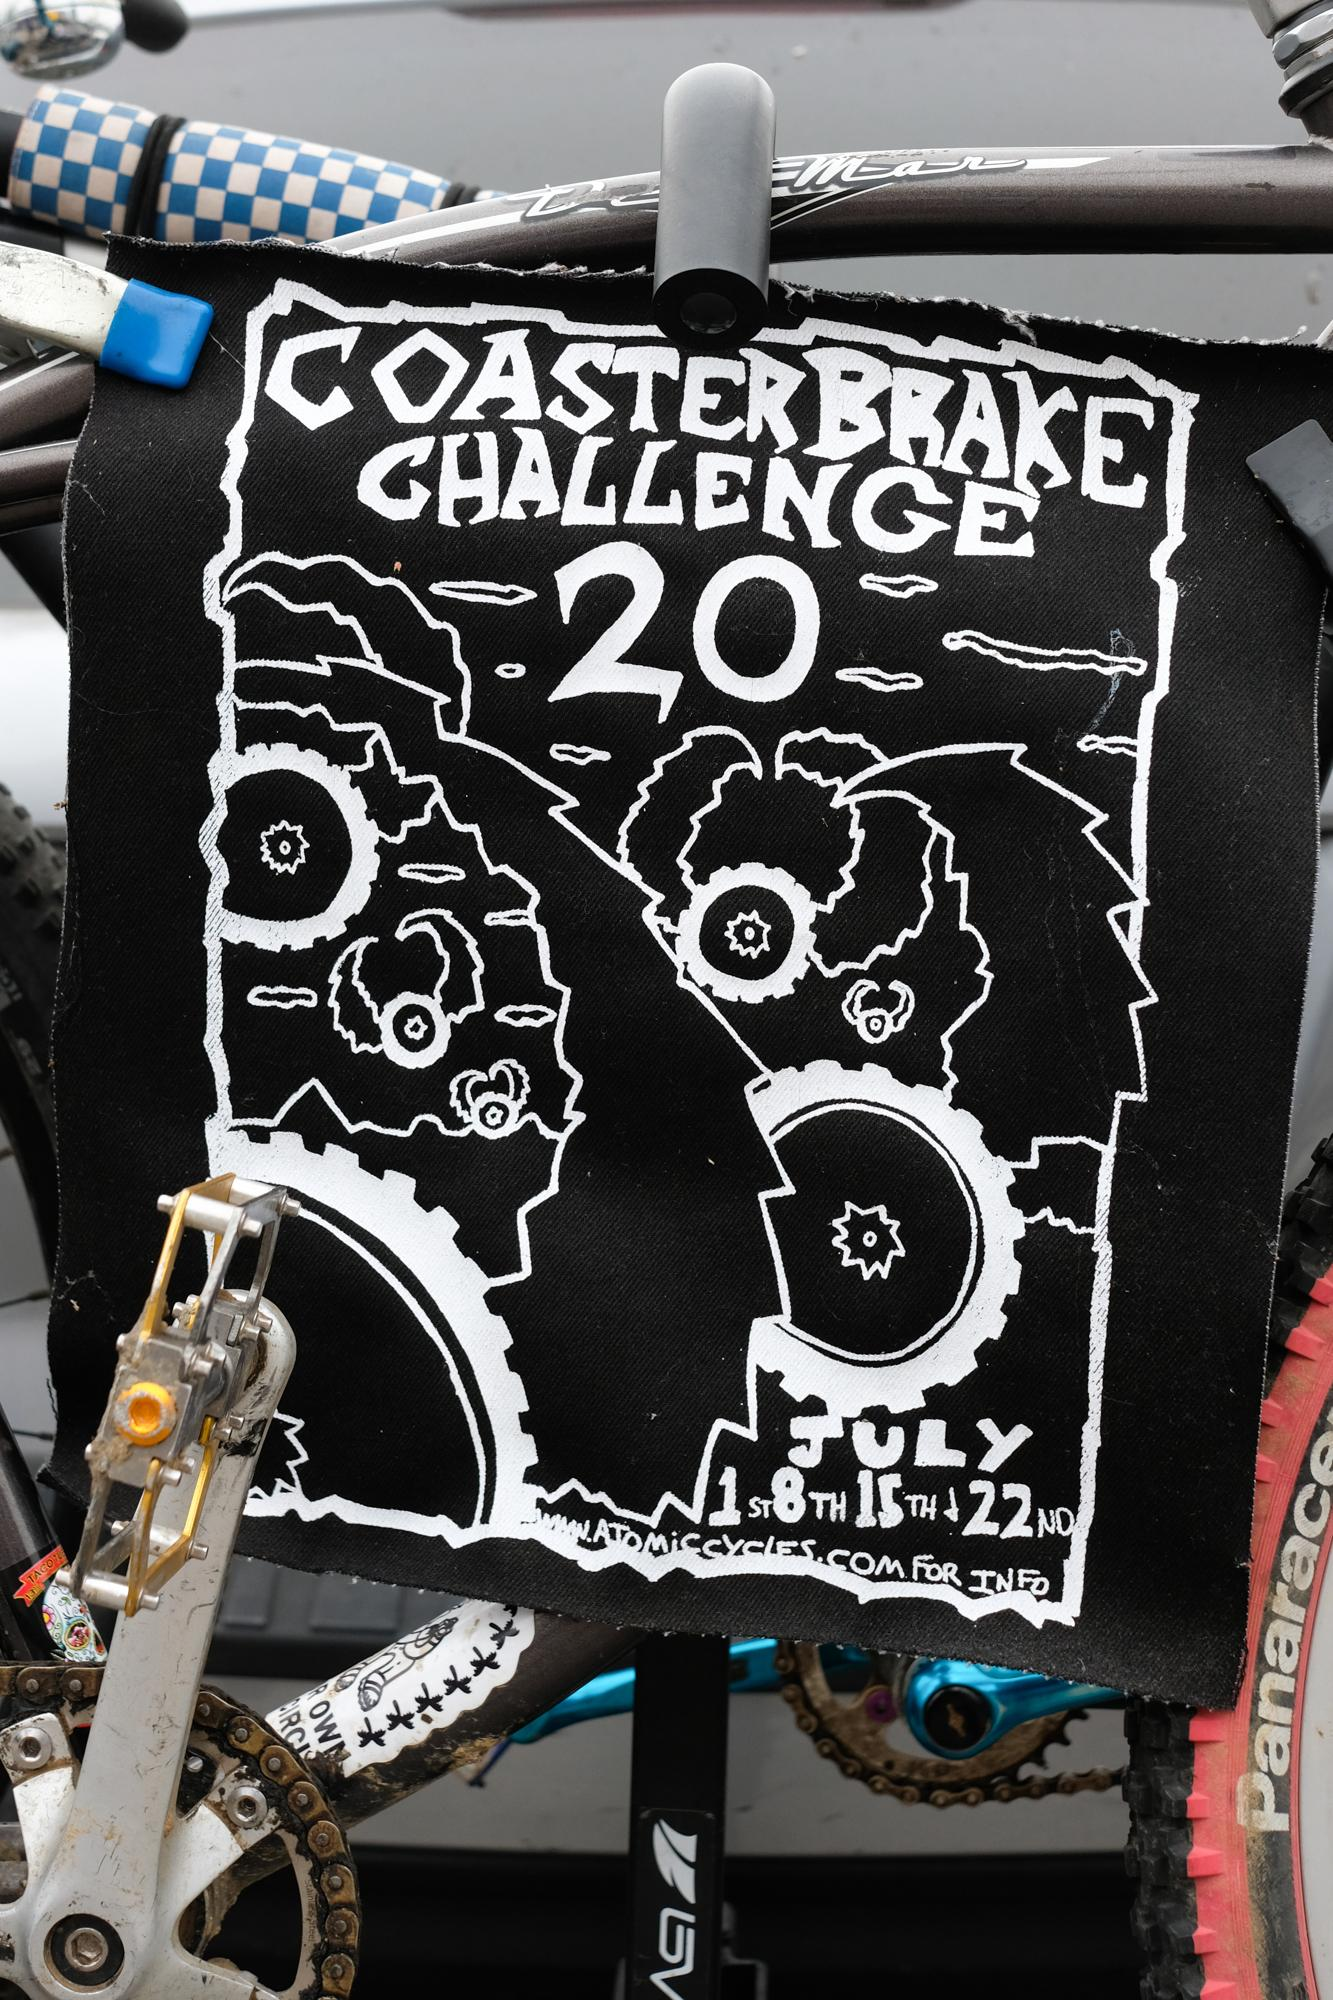 The Coaster Brake Challenge: And Y'all Thought You Were a Freak!